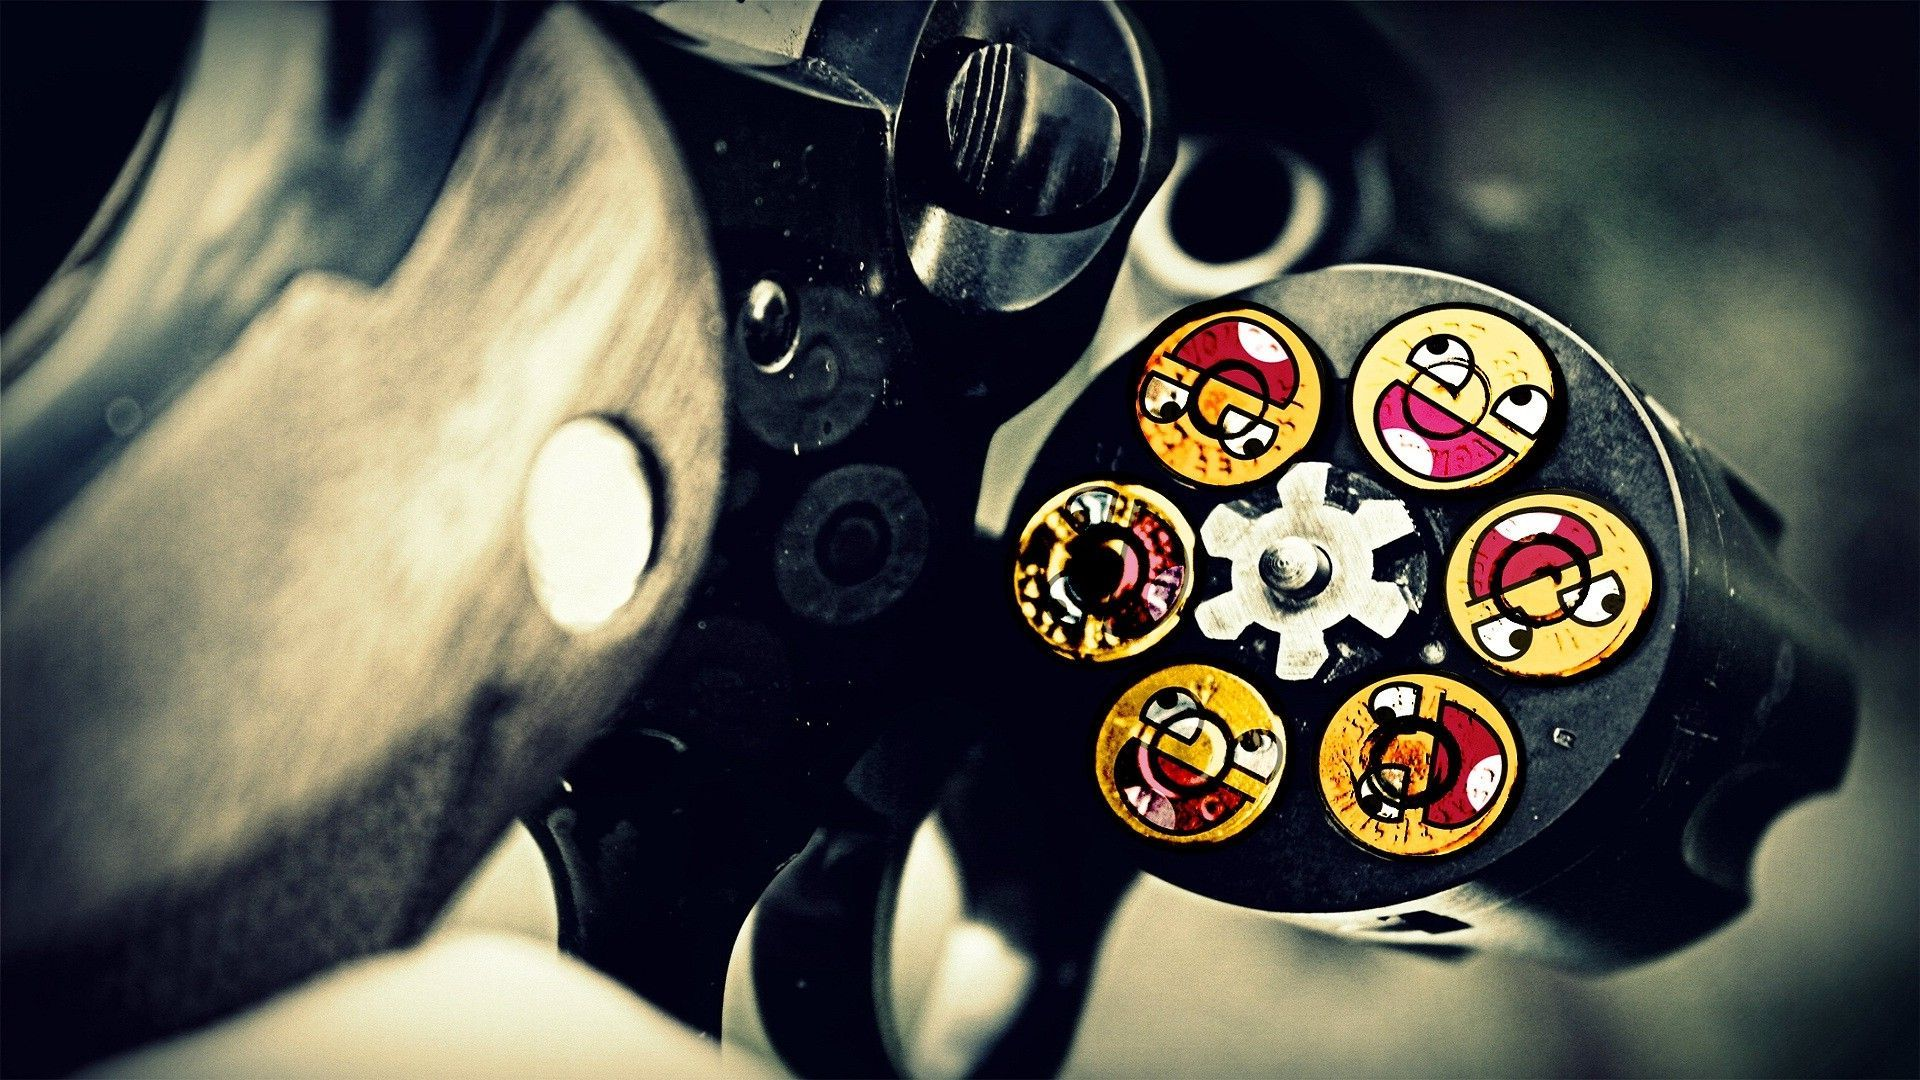 Awesome face bullets Wallpaper 7480 1920x1080